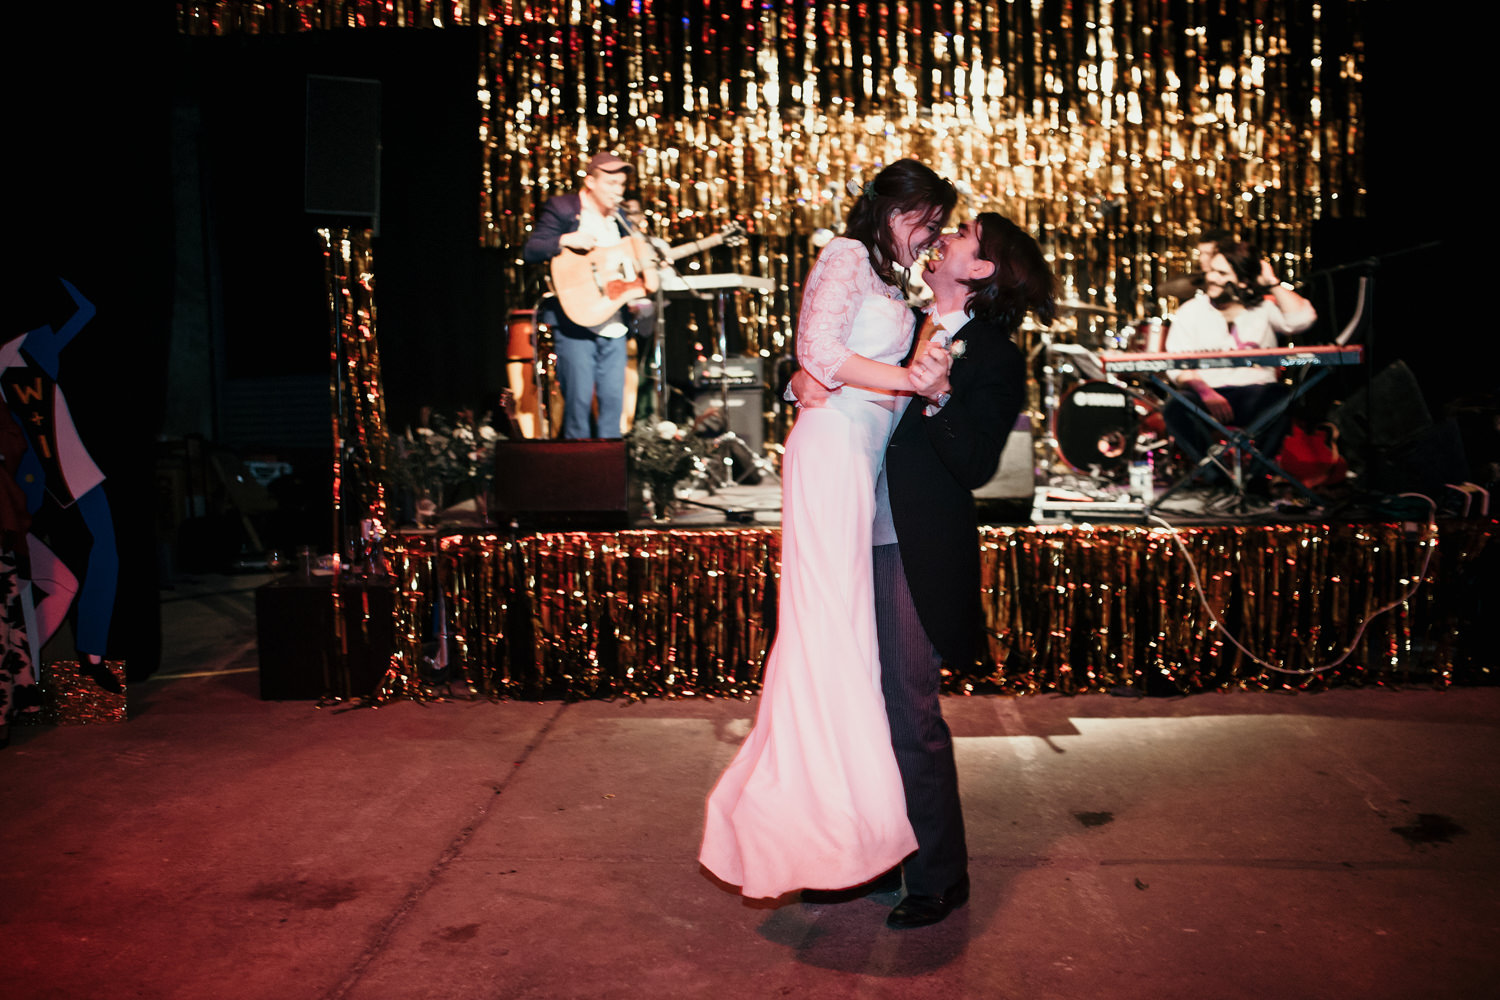 bride and groom during their first dance with Josh Flowers playing on the stage